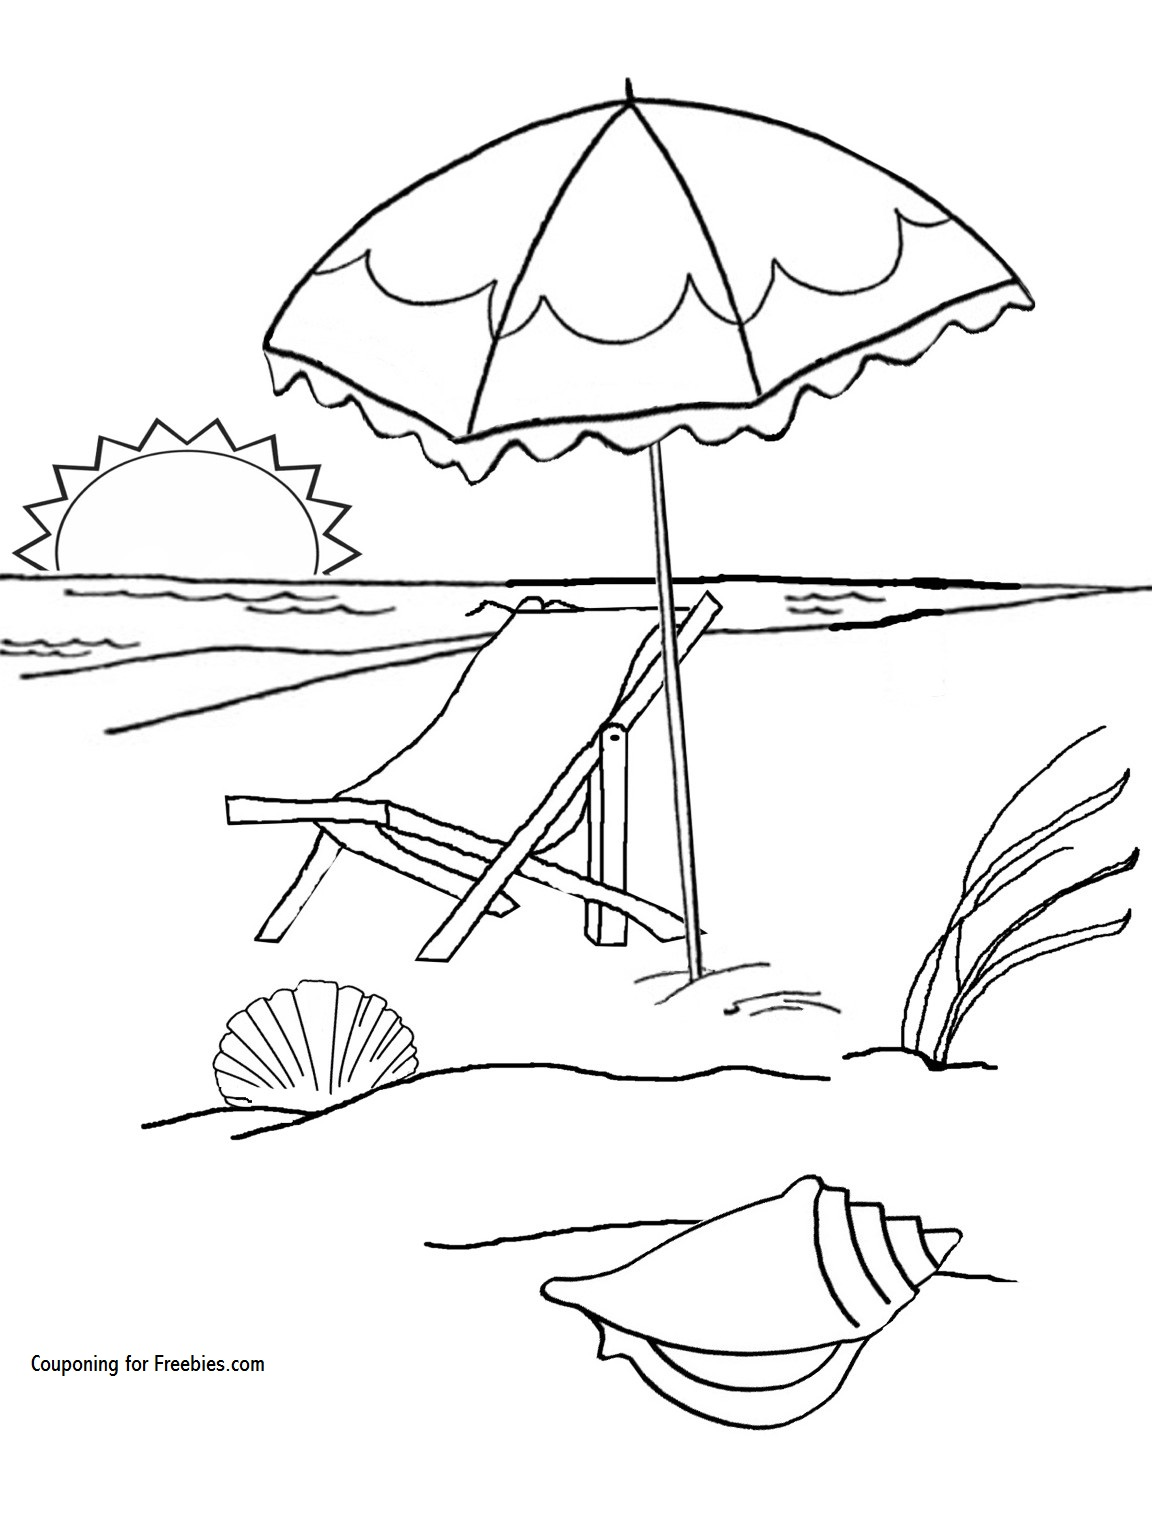 beach colouring page coloring pages free beach coloring picture fun kids summer activity beach page pages coloring colouring